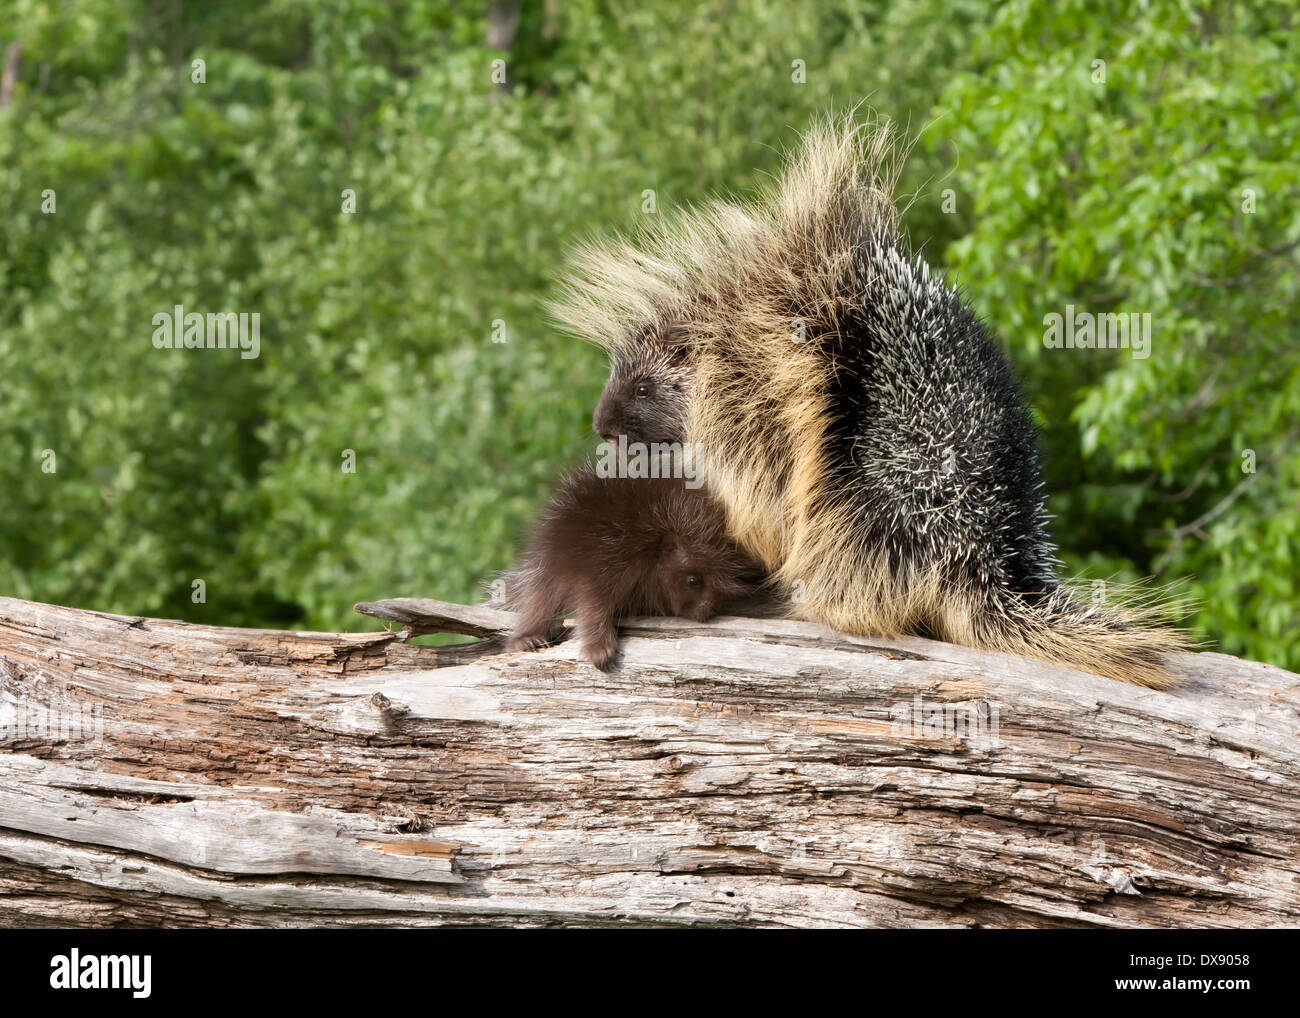 Porcupine Mom and Baby on a fallen tree trunk Stock Photo